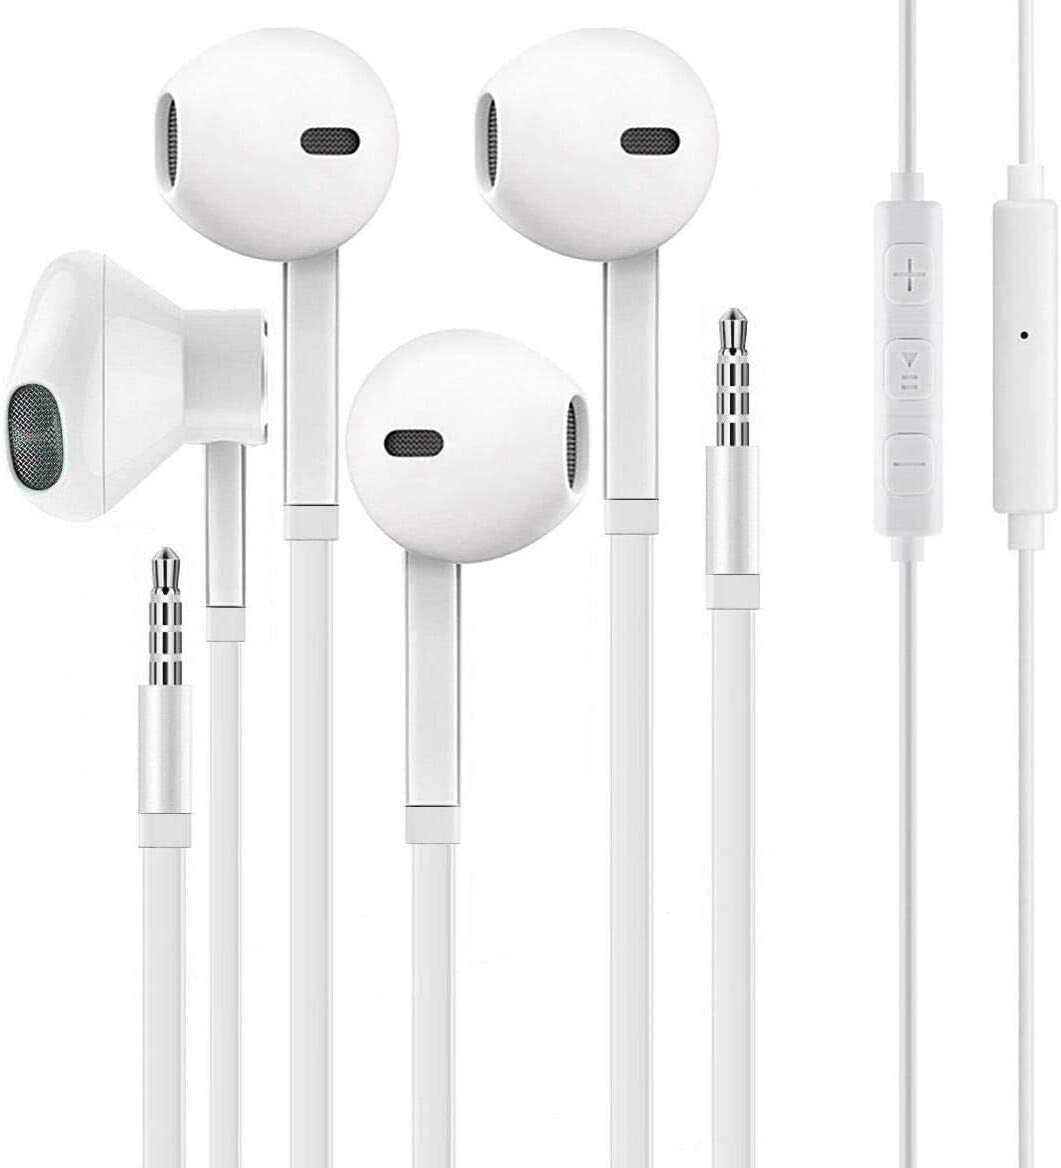 for iPhone Earbuds with 3.5mm Headphone Plug Mic Call+Volume Control for iPhone Earphones Compatible with iPhone 6s/6plus/6/5s,Android,PC in-Ear Headphone Headset -2PACK